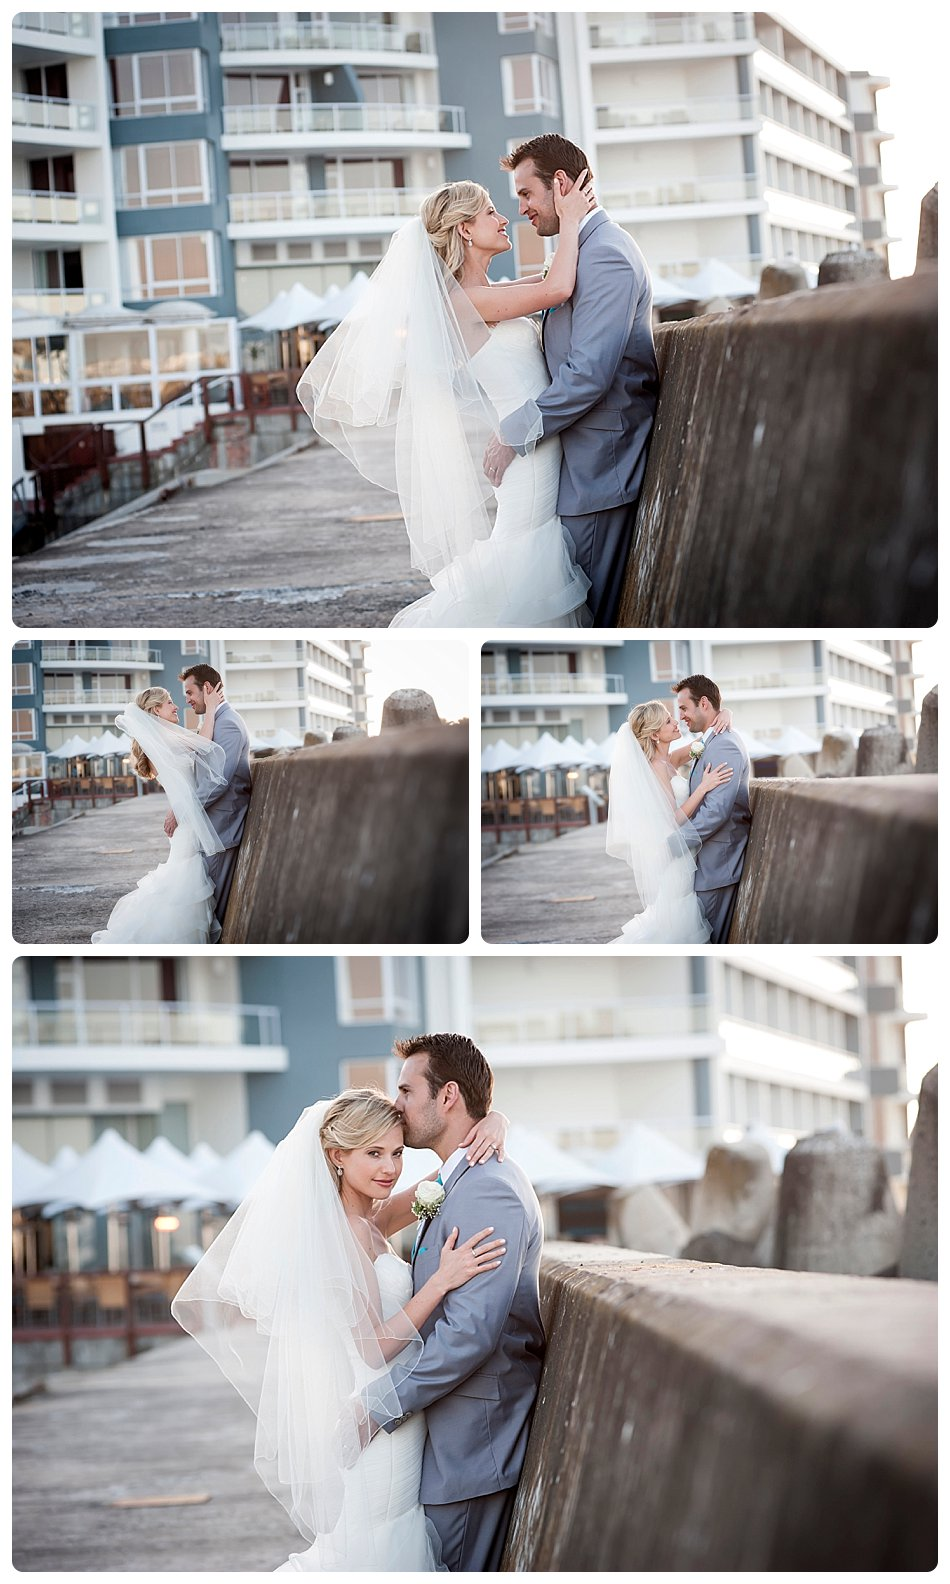 wedding-cape-town-joanne-markland-photography-grangerbay-Paul-jenny-0042